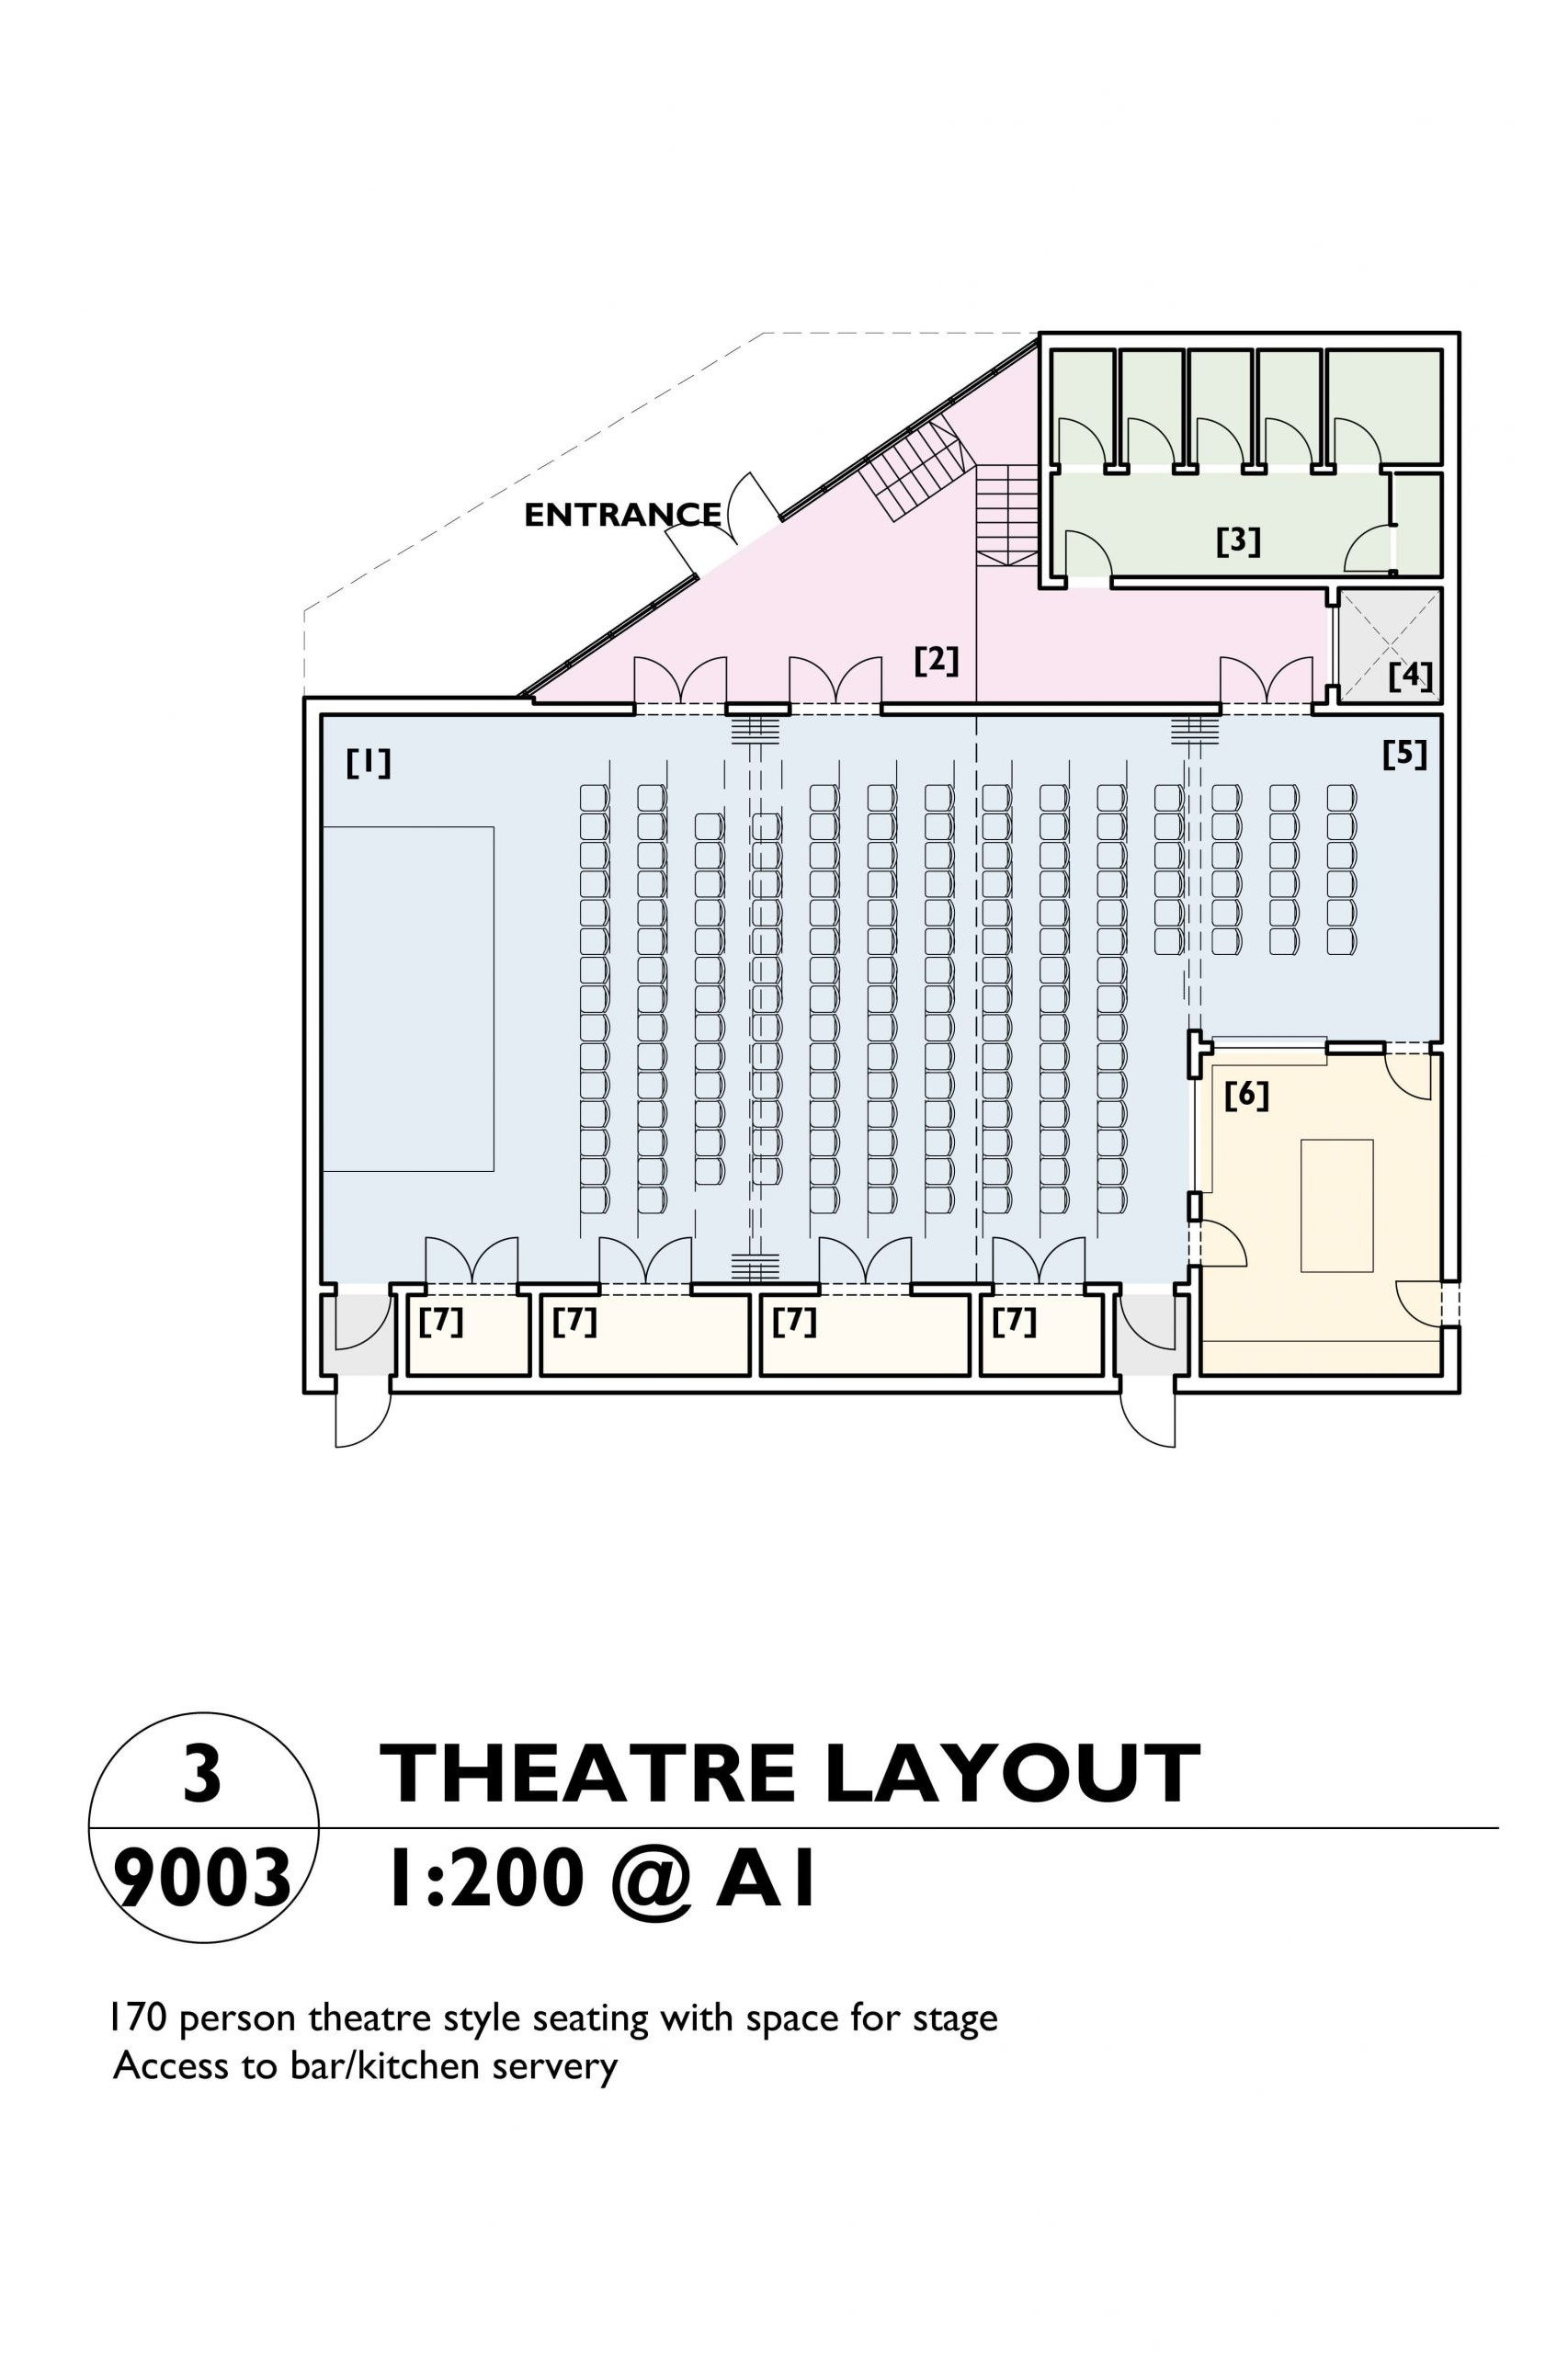 Image showing the theatre layout plan of the Mill Arts Centre